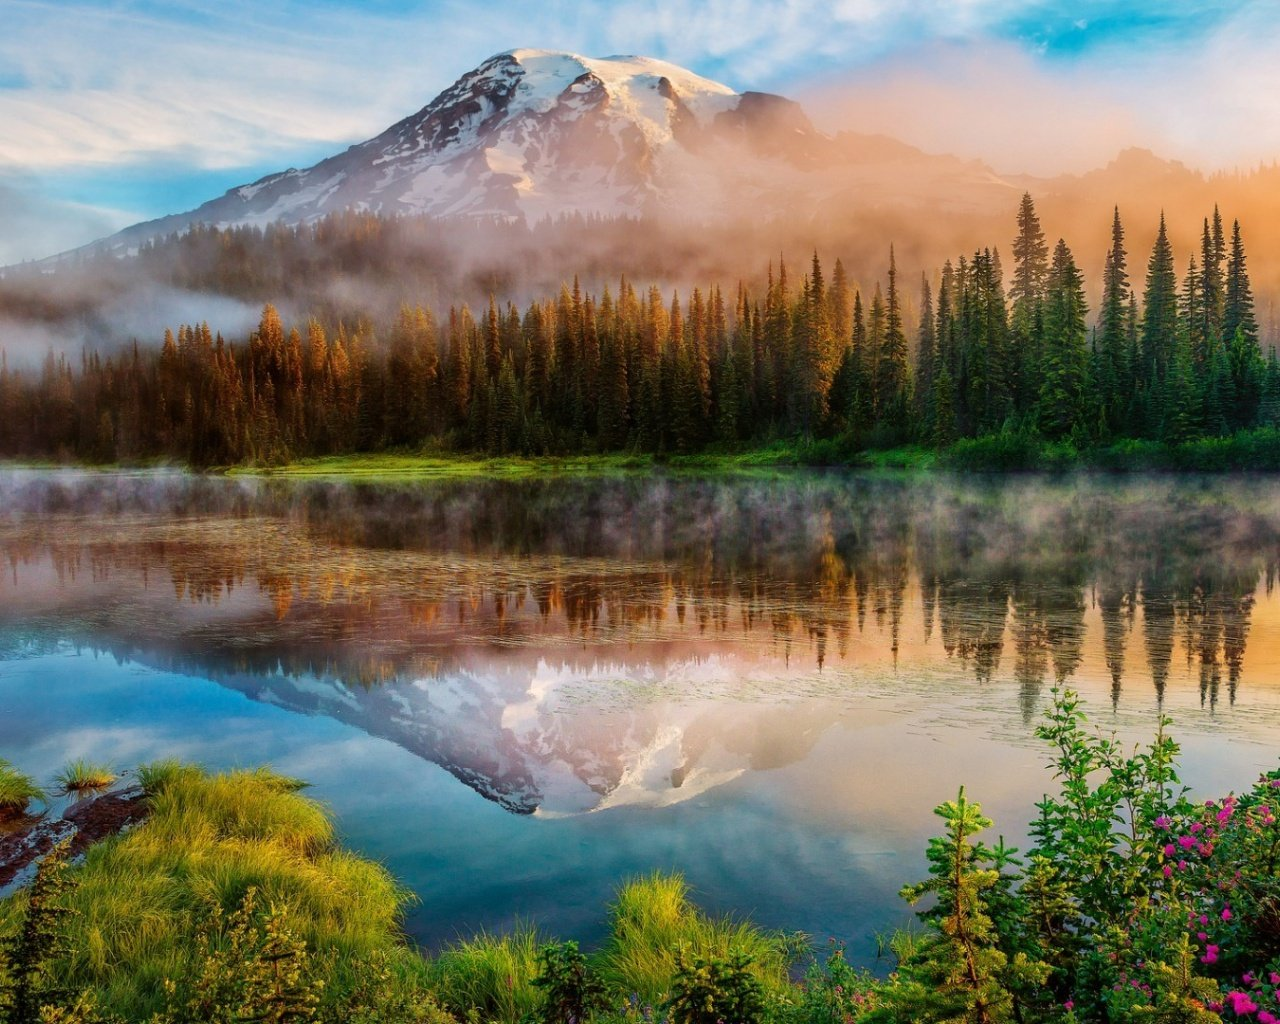 1280x1024 Mount Rainier Landscape desktop PC and Mac wallpaper 1280x1024